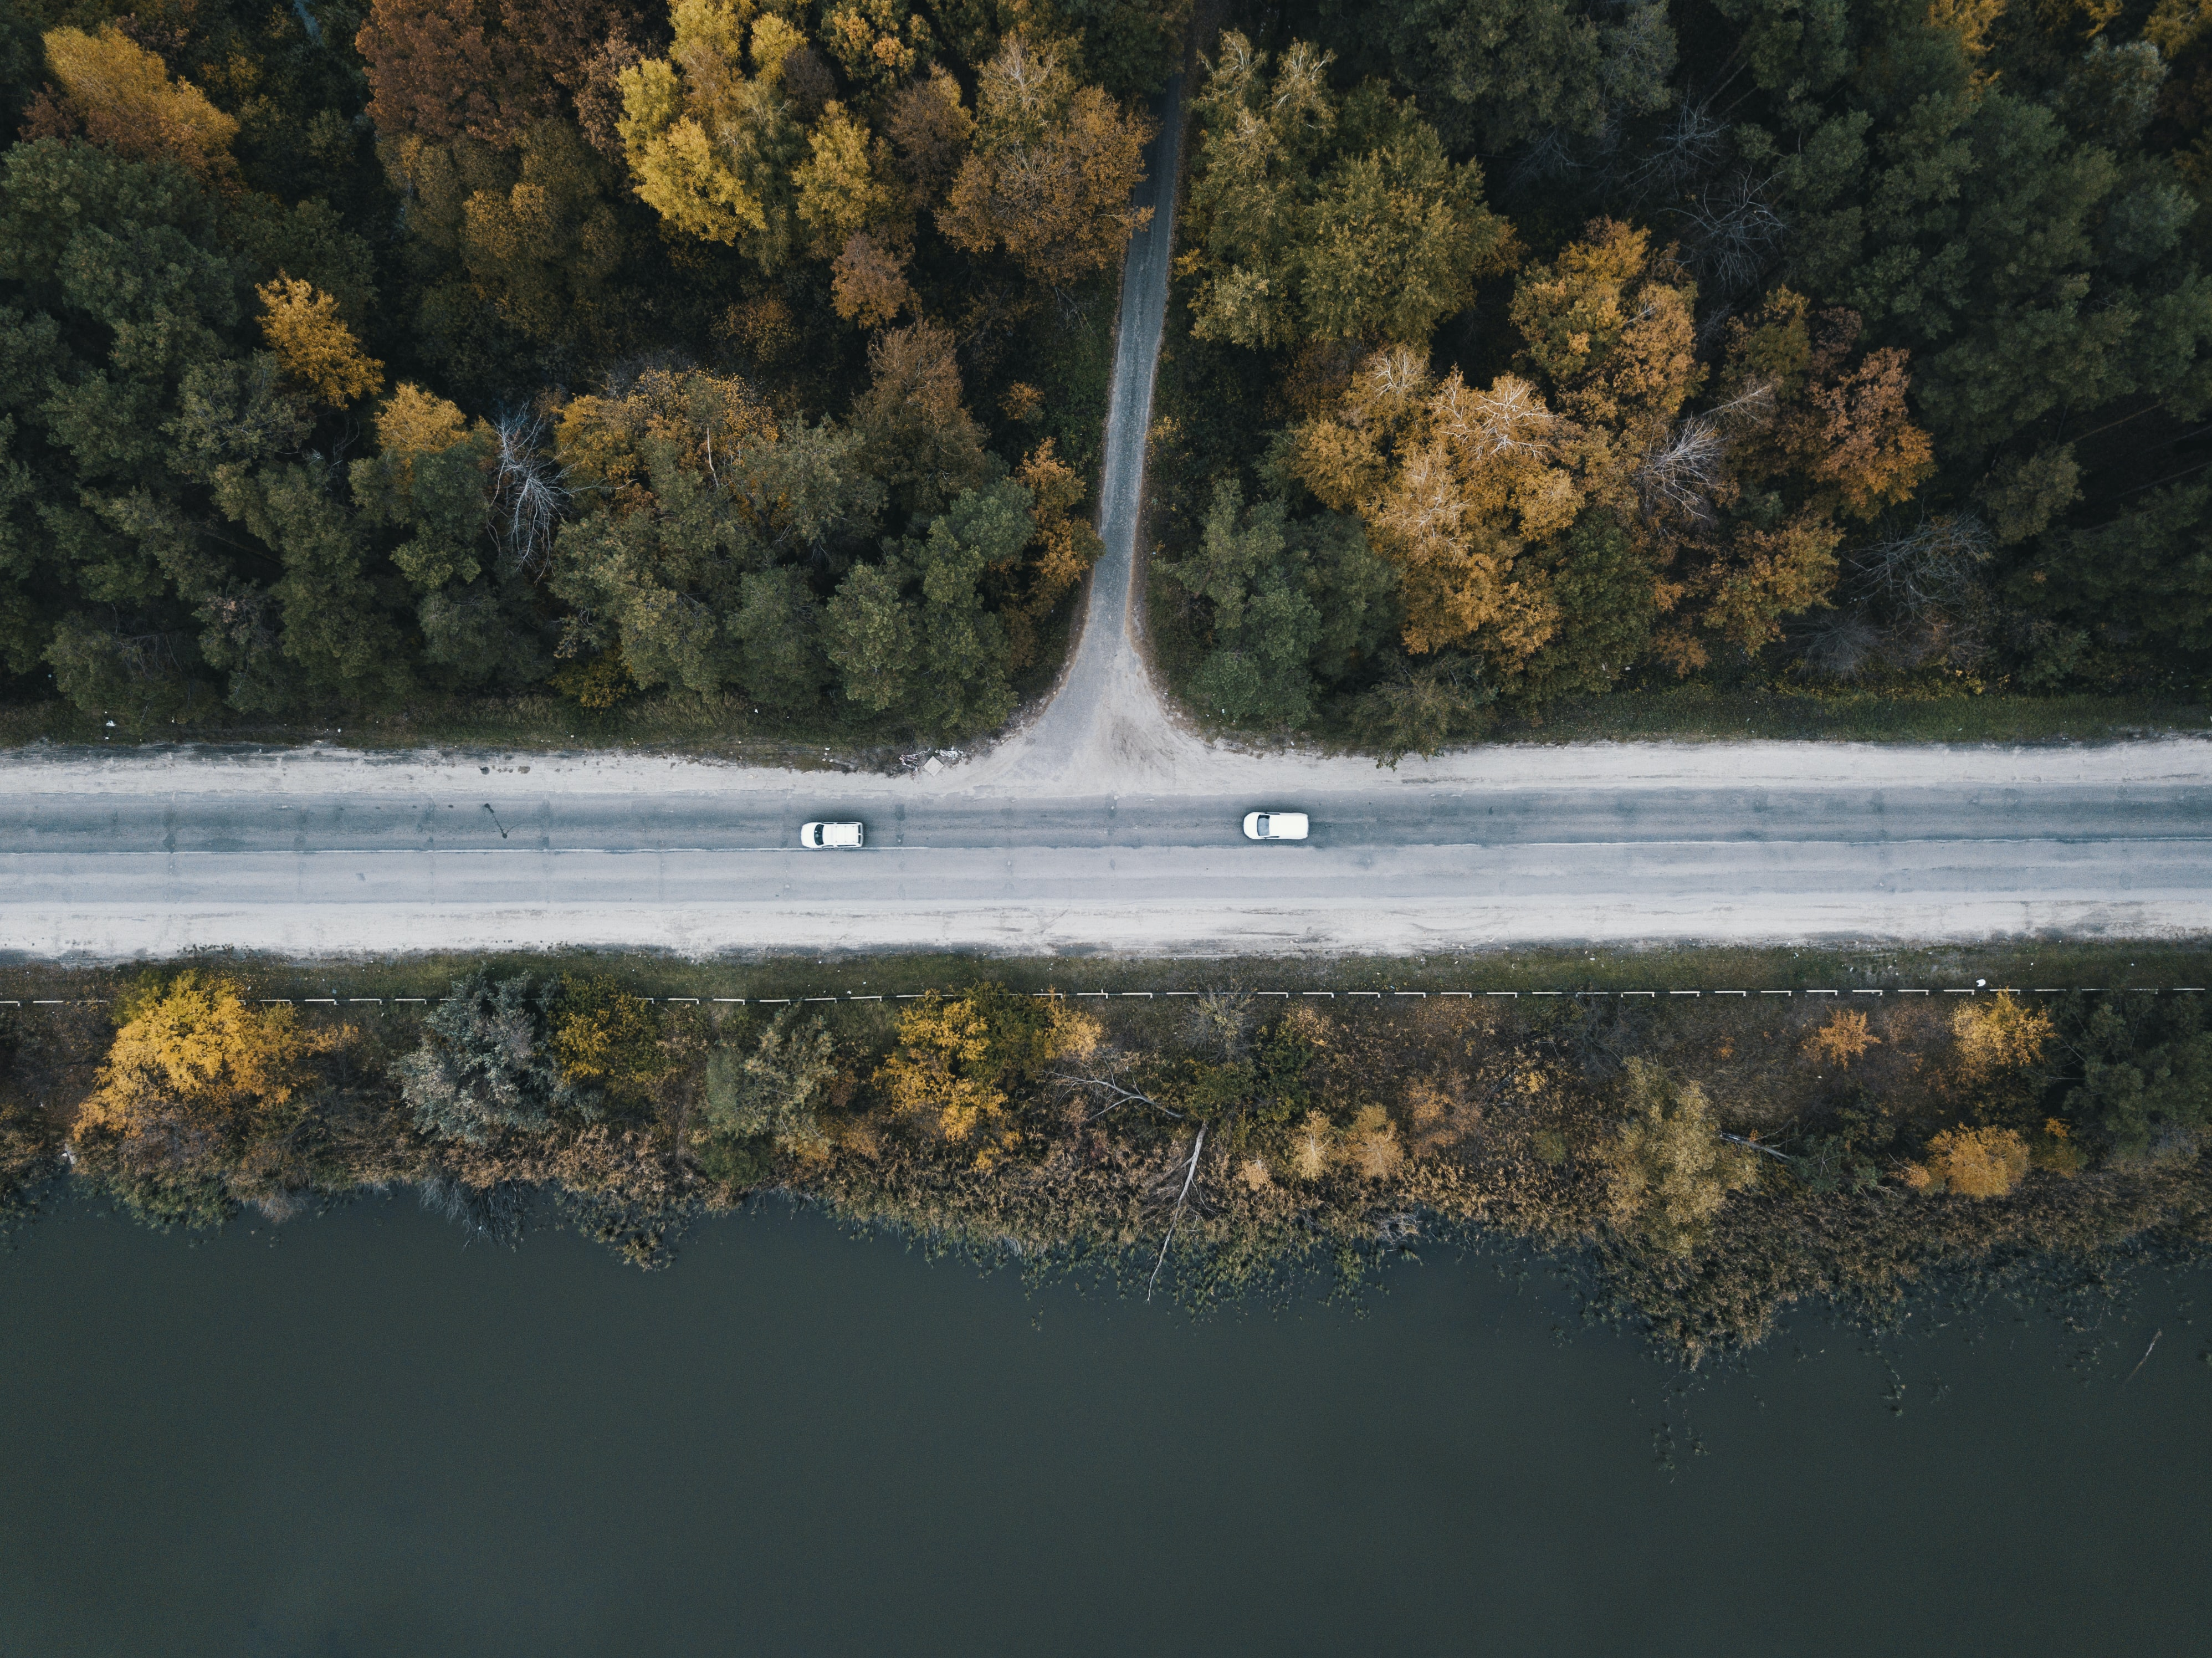 bird's eye view photo of road between green leafed trees